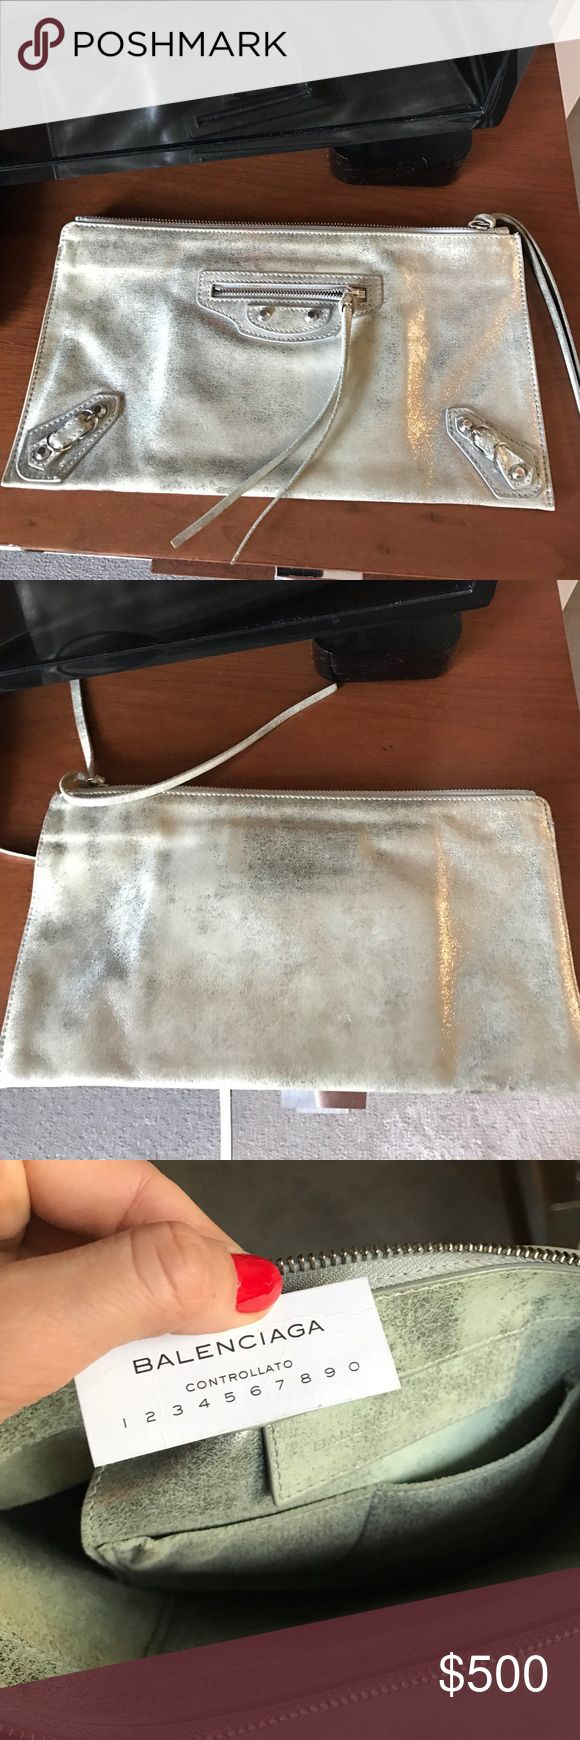 Balenciaga Clutch Silver and shimmery. Easy evening bag. Goes with everything. Excellent condition. Comes with dust bag. No trade. Balenciaga Bags Clutches & Wristlets